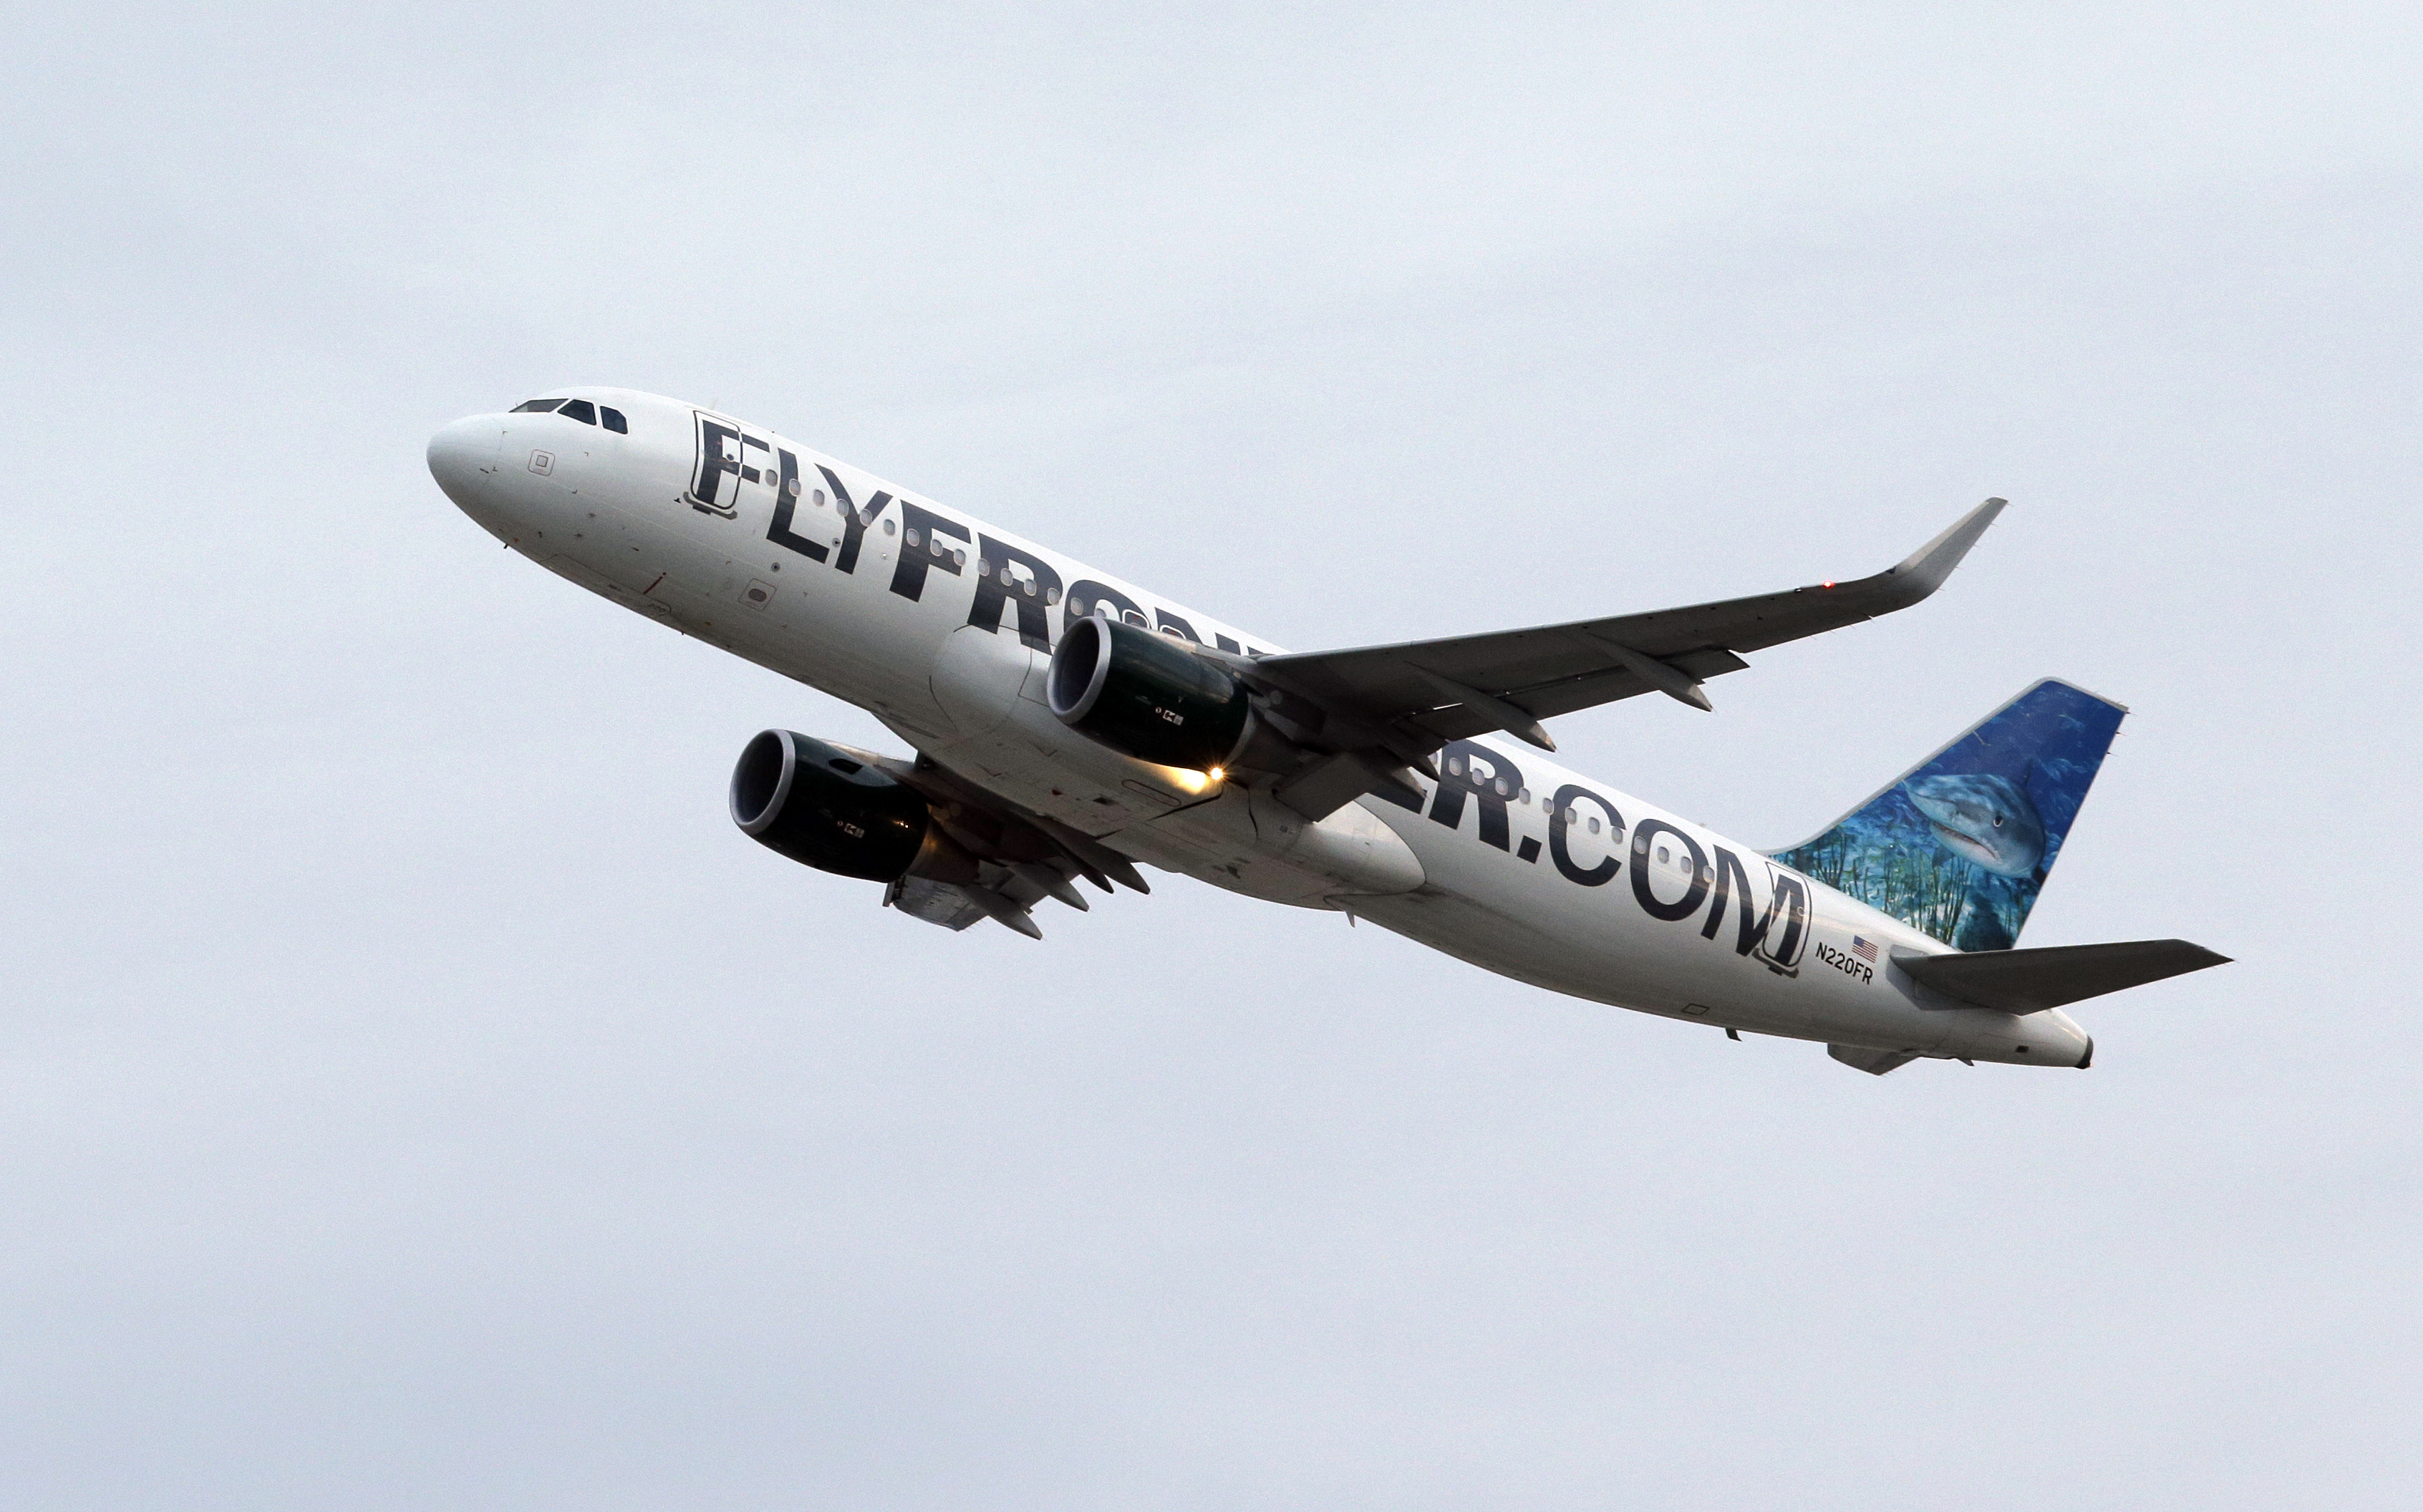 Photo: Frontier Airlines airplane (AP Photo)